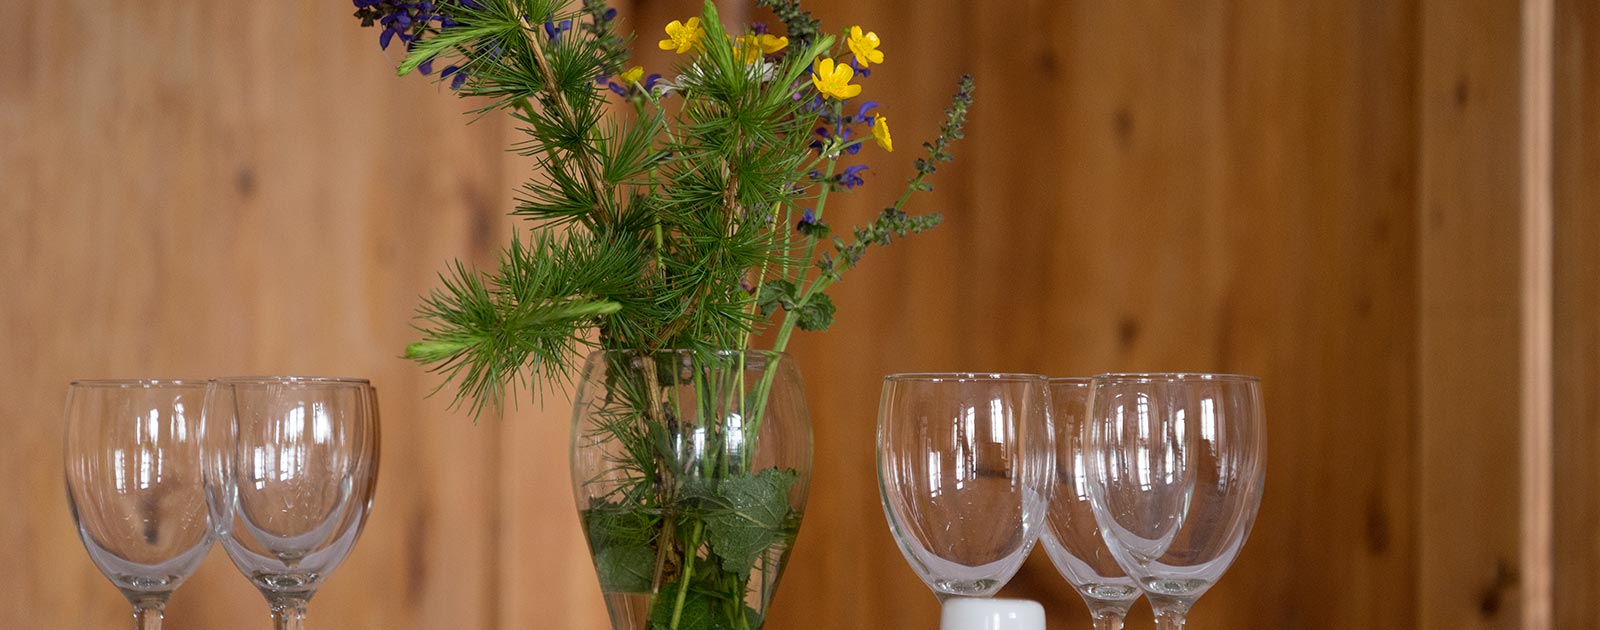 table decoration and wine glasses on a wooden table